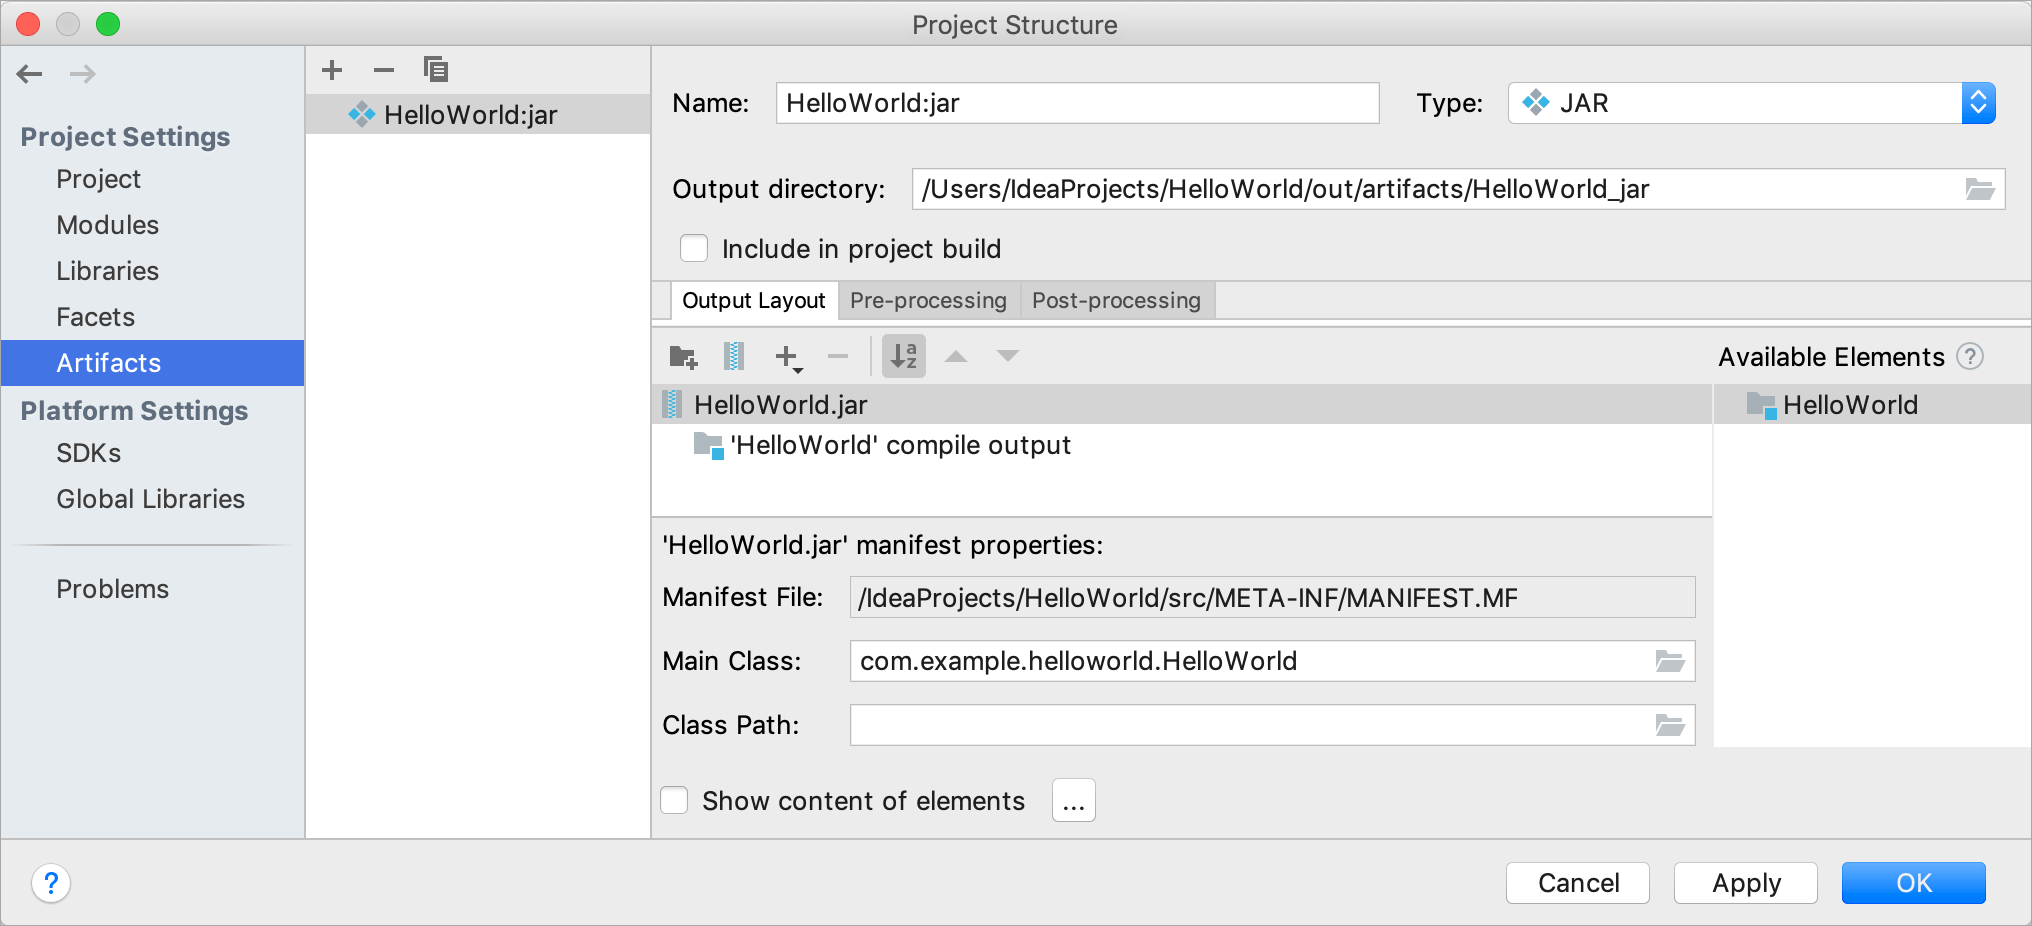 Project Structure dialog / Artifacts page